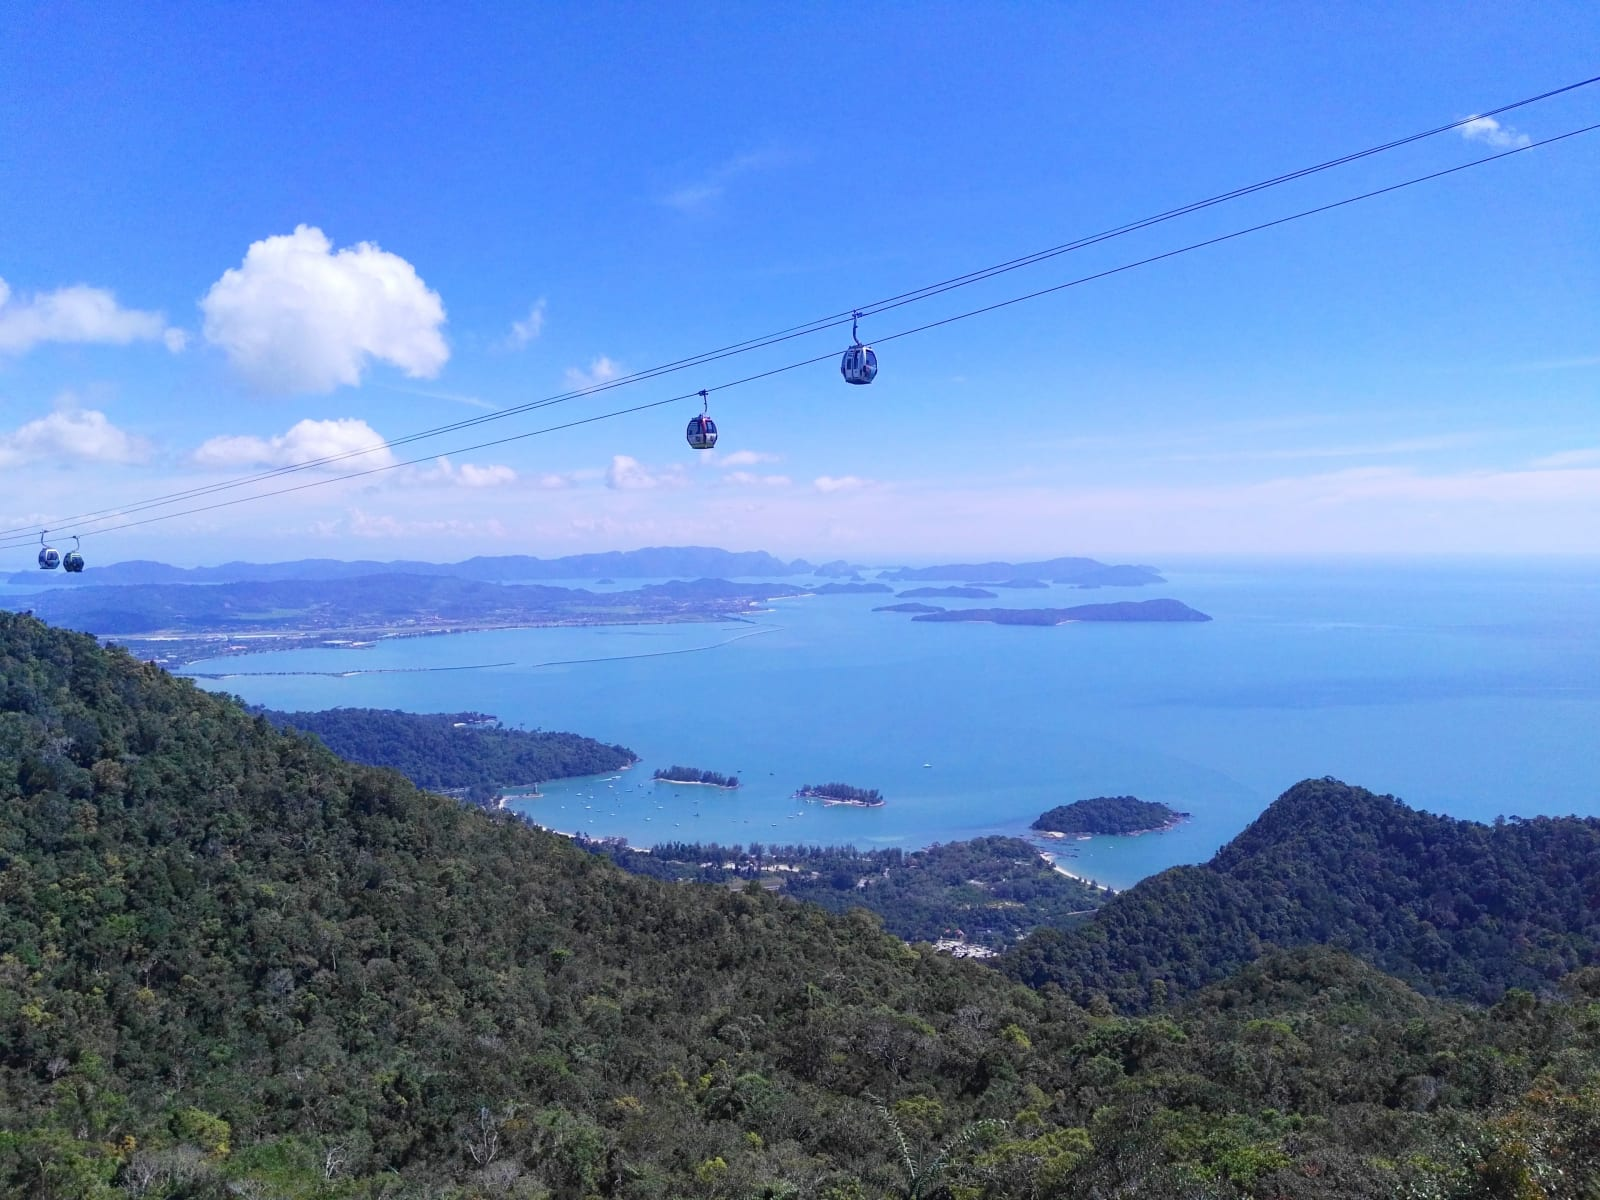 Sky cable car